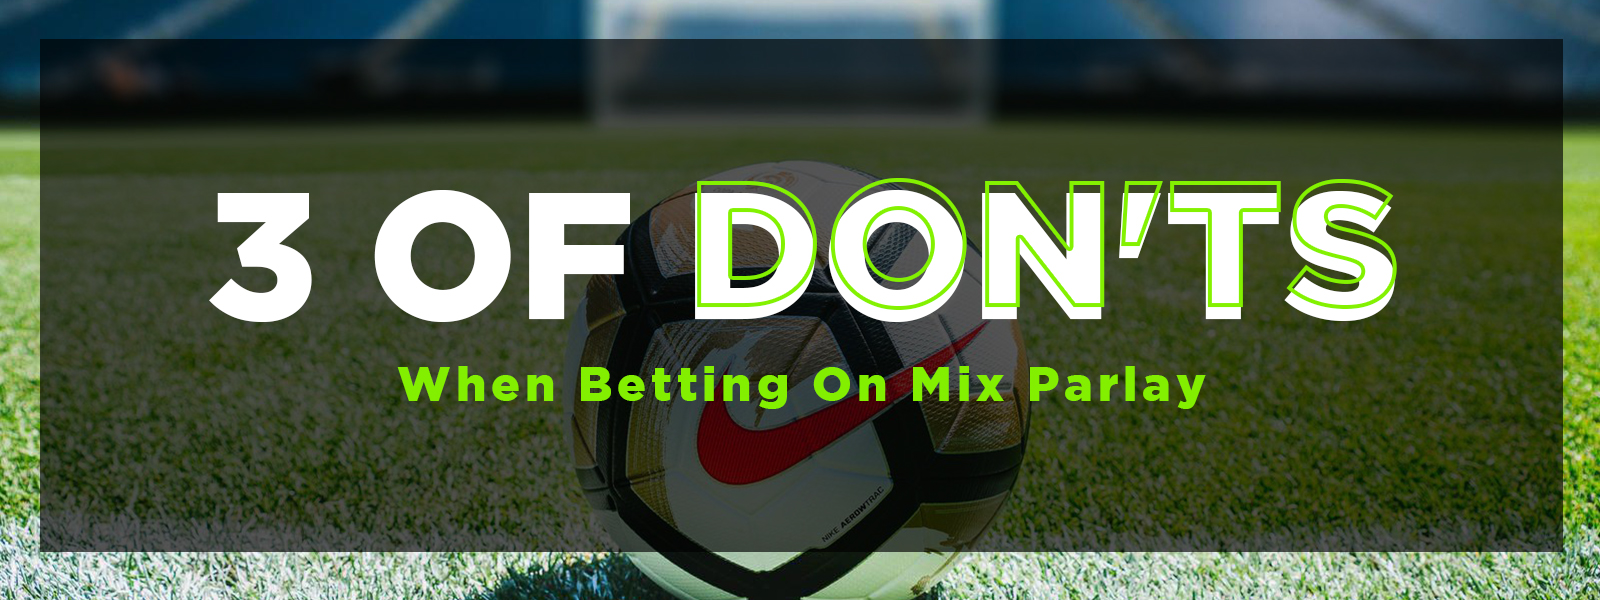 3 Of Don'ts When Betting On Mix Parlay